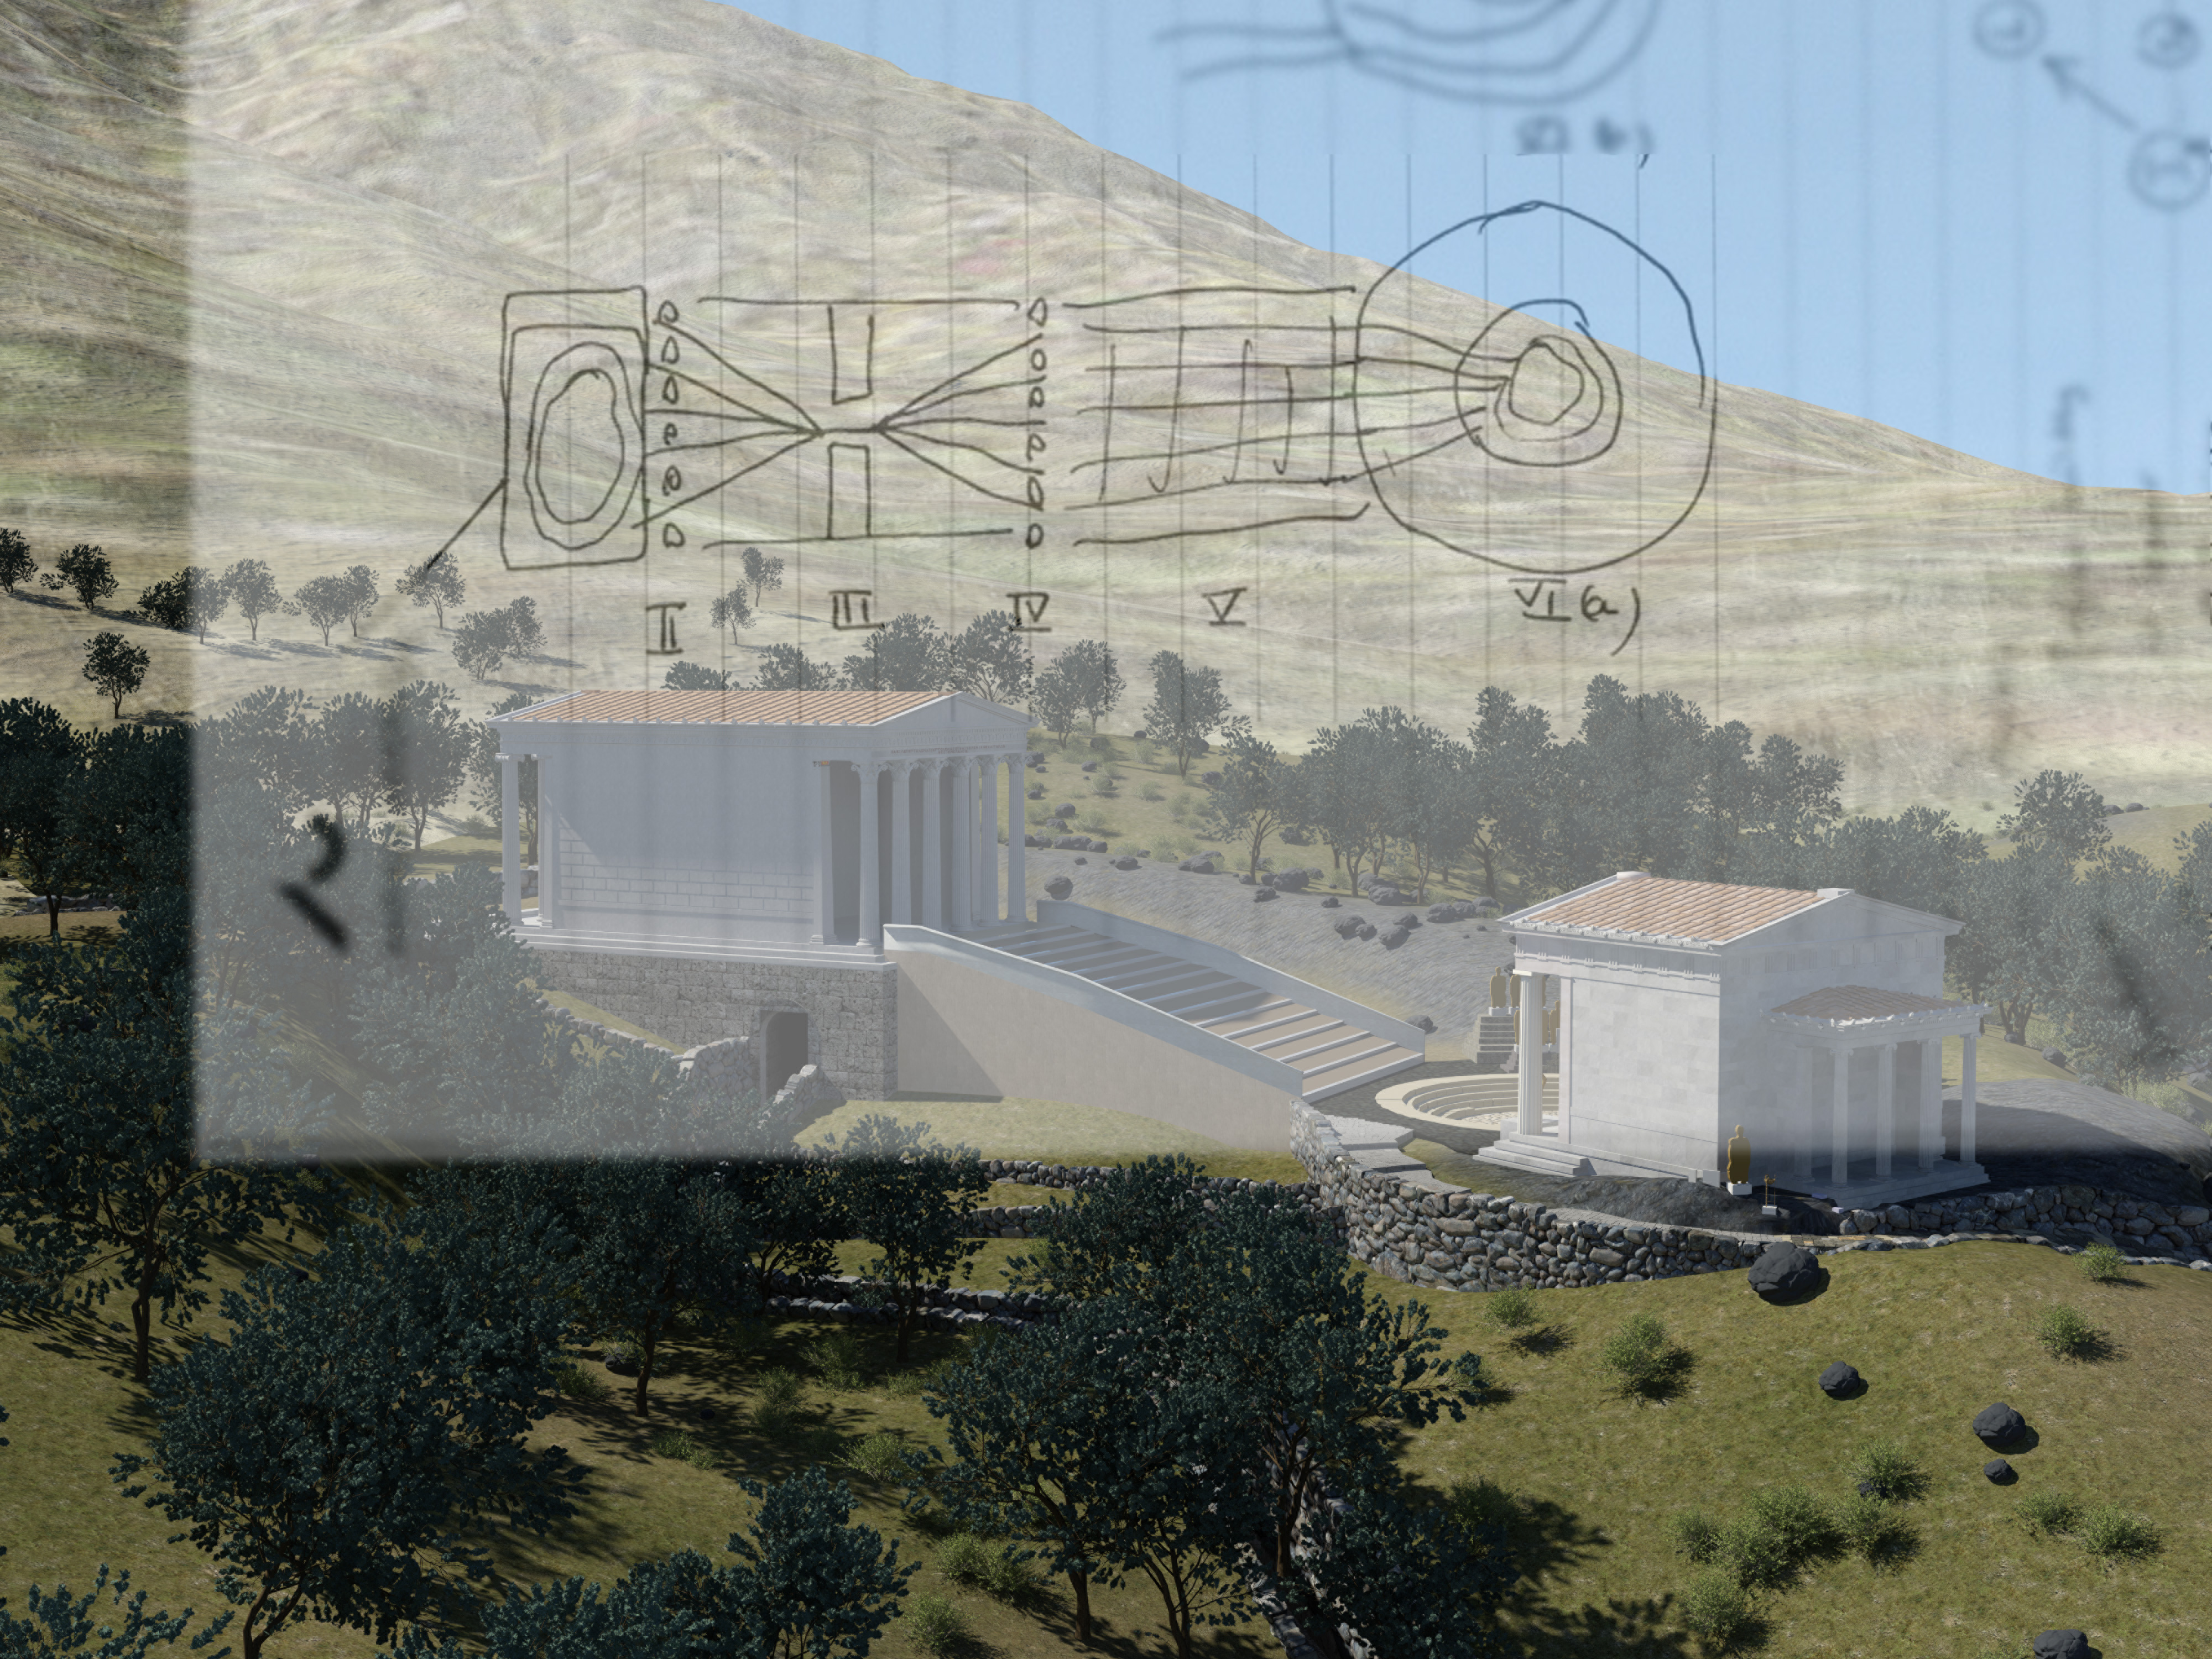 3D visualization of Samothrace with superimposed hand drawn image depicting apart of the ABM simulation strategy